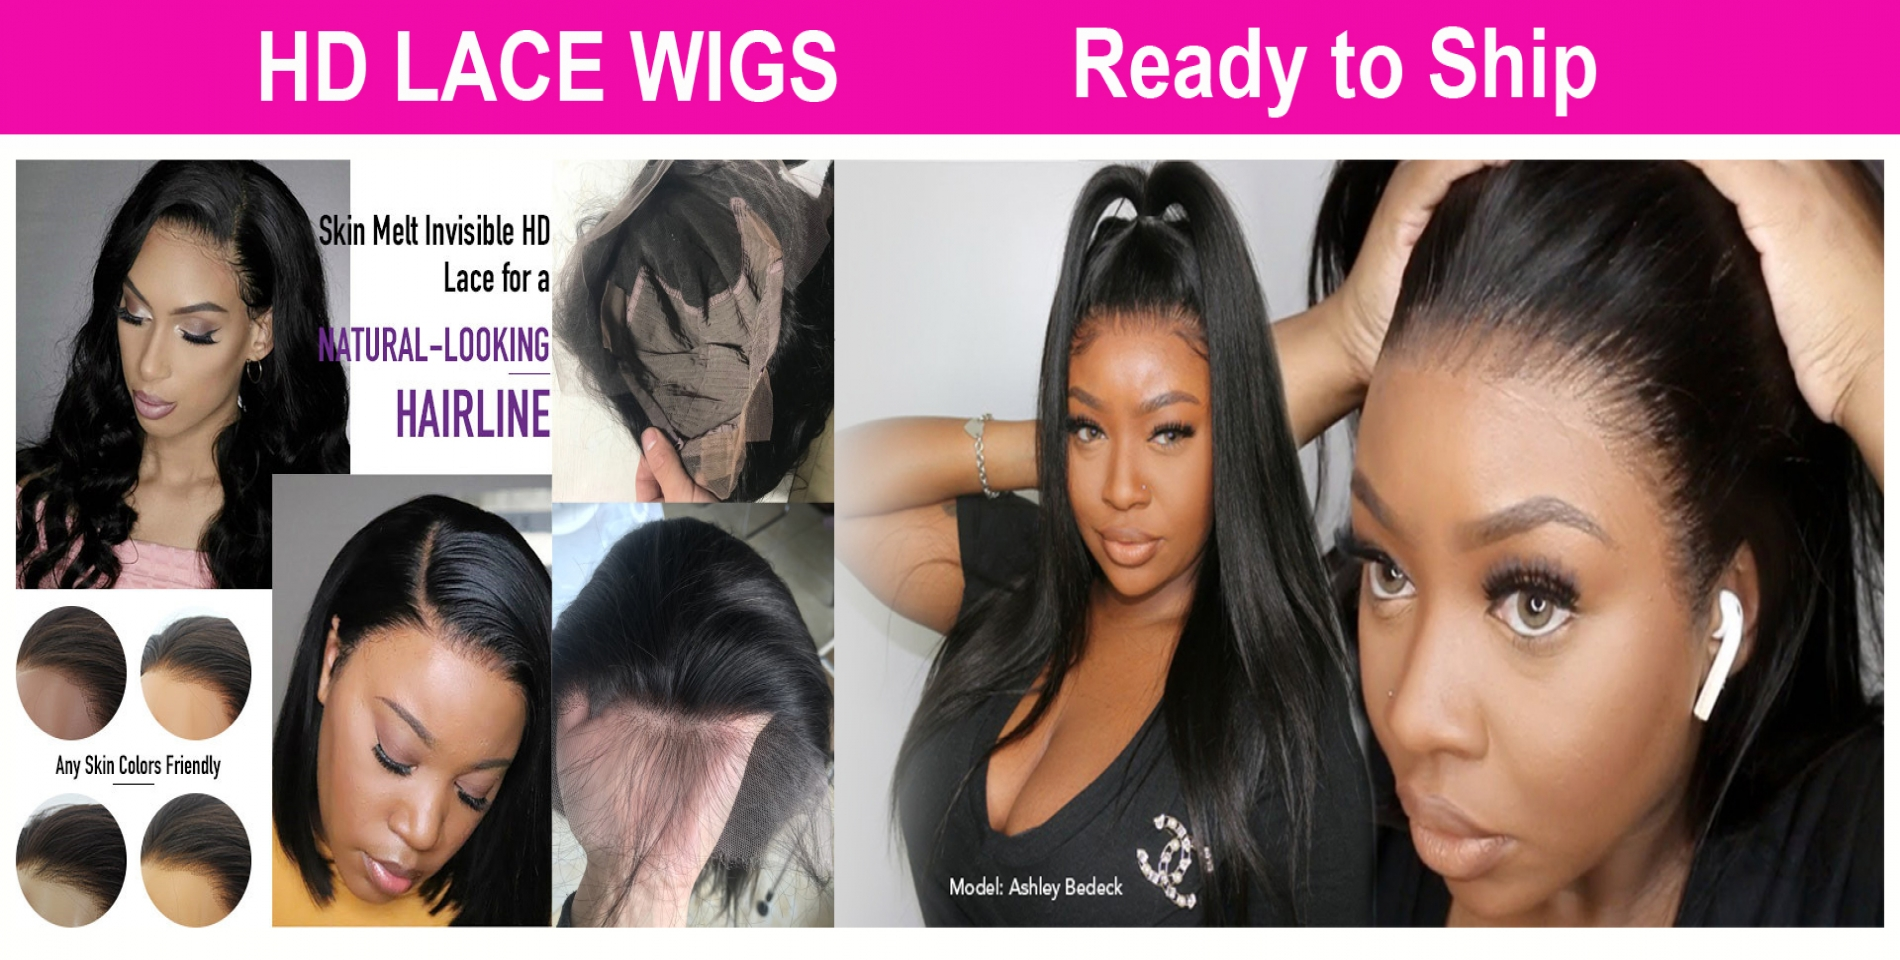 https://www.oceanwigs.com/hd-undetectable-13-6-lace-front-wig-150-body-wave.html